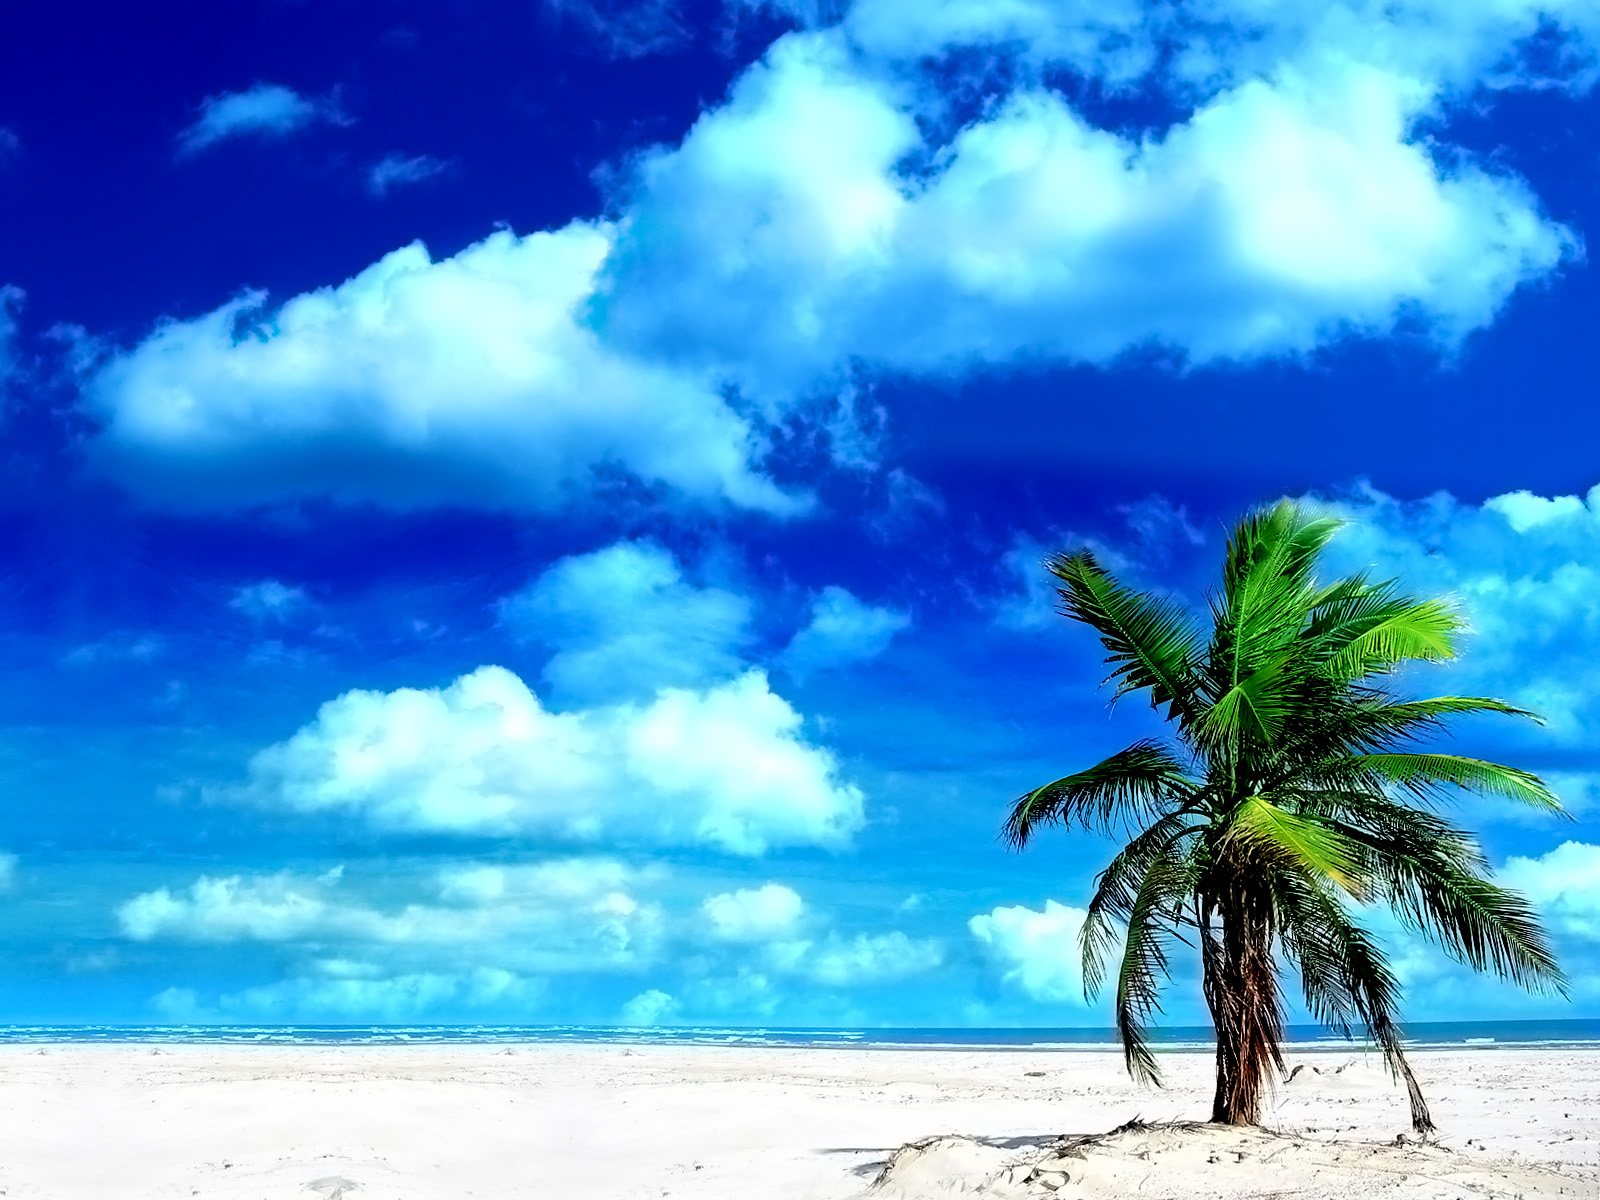 Beach Wallpapers Hd Beach Wallpapers Hd